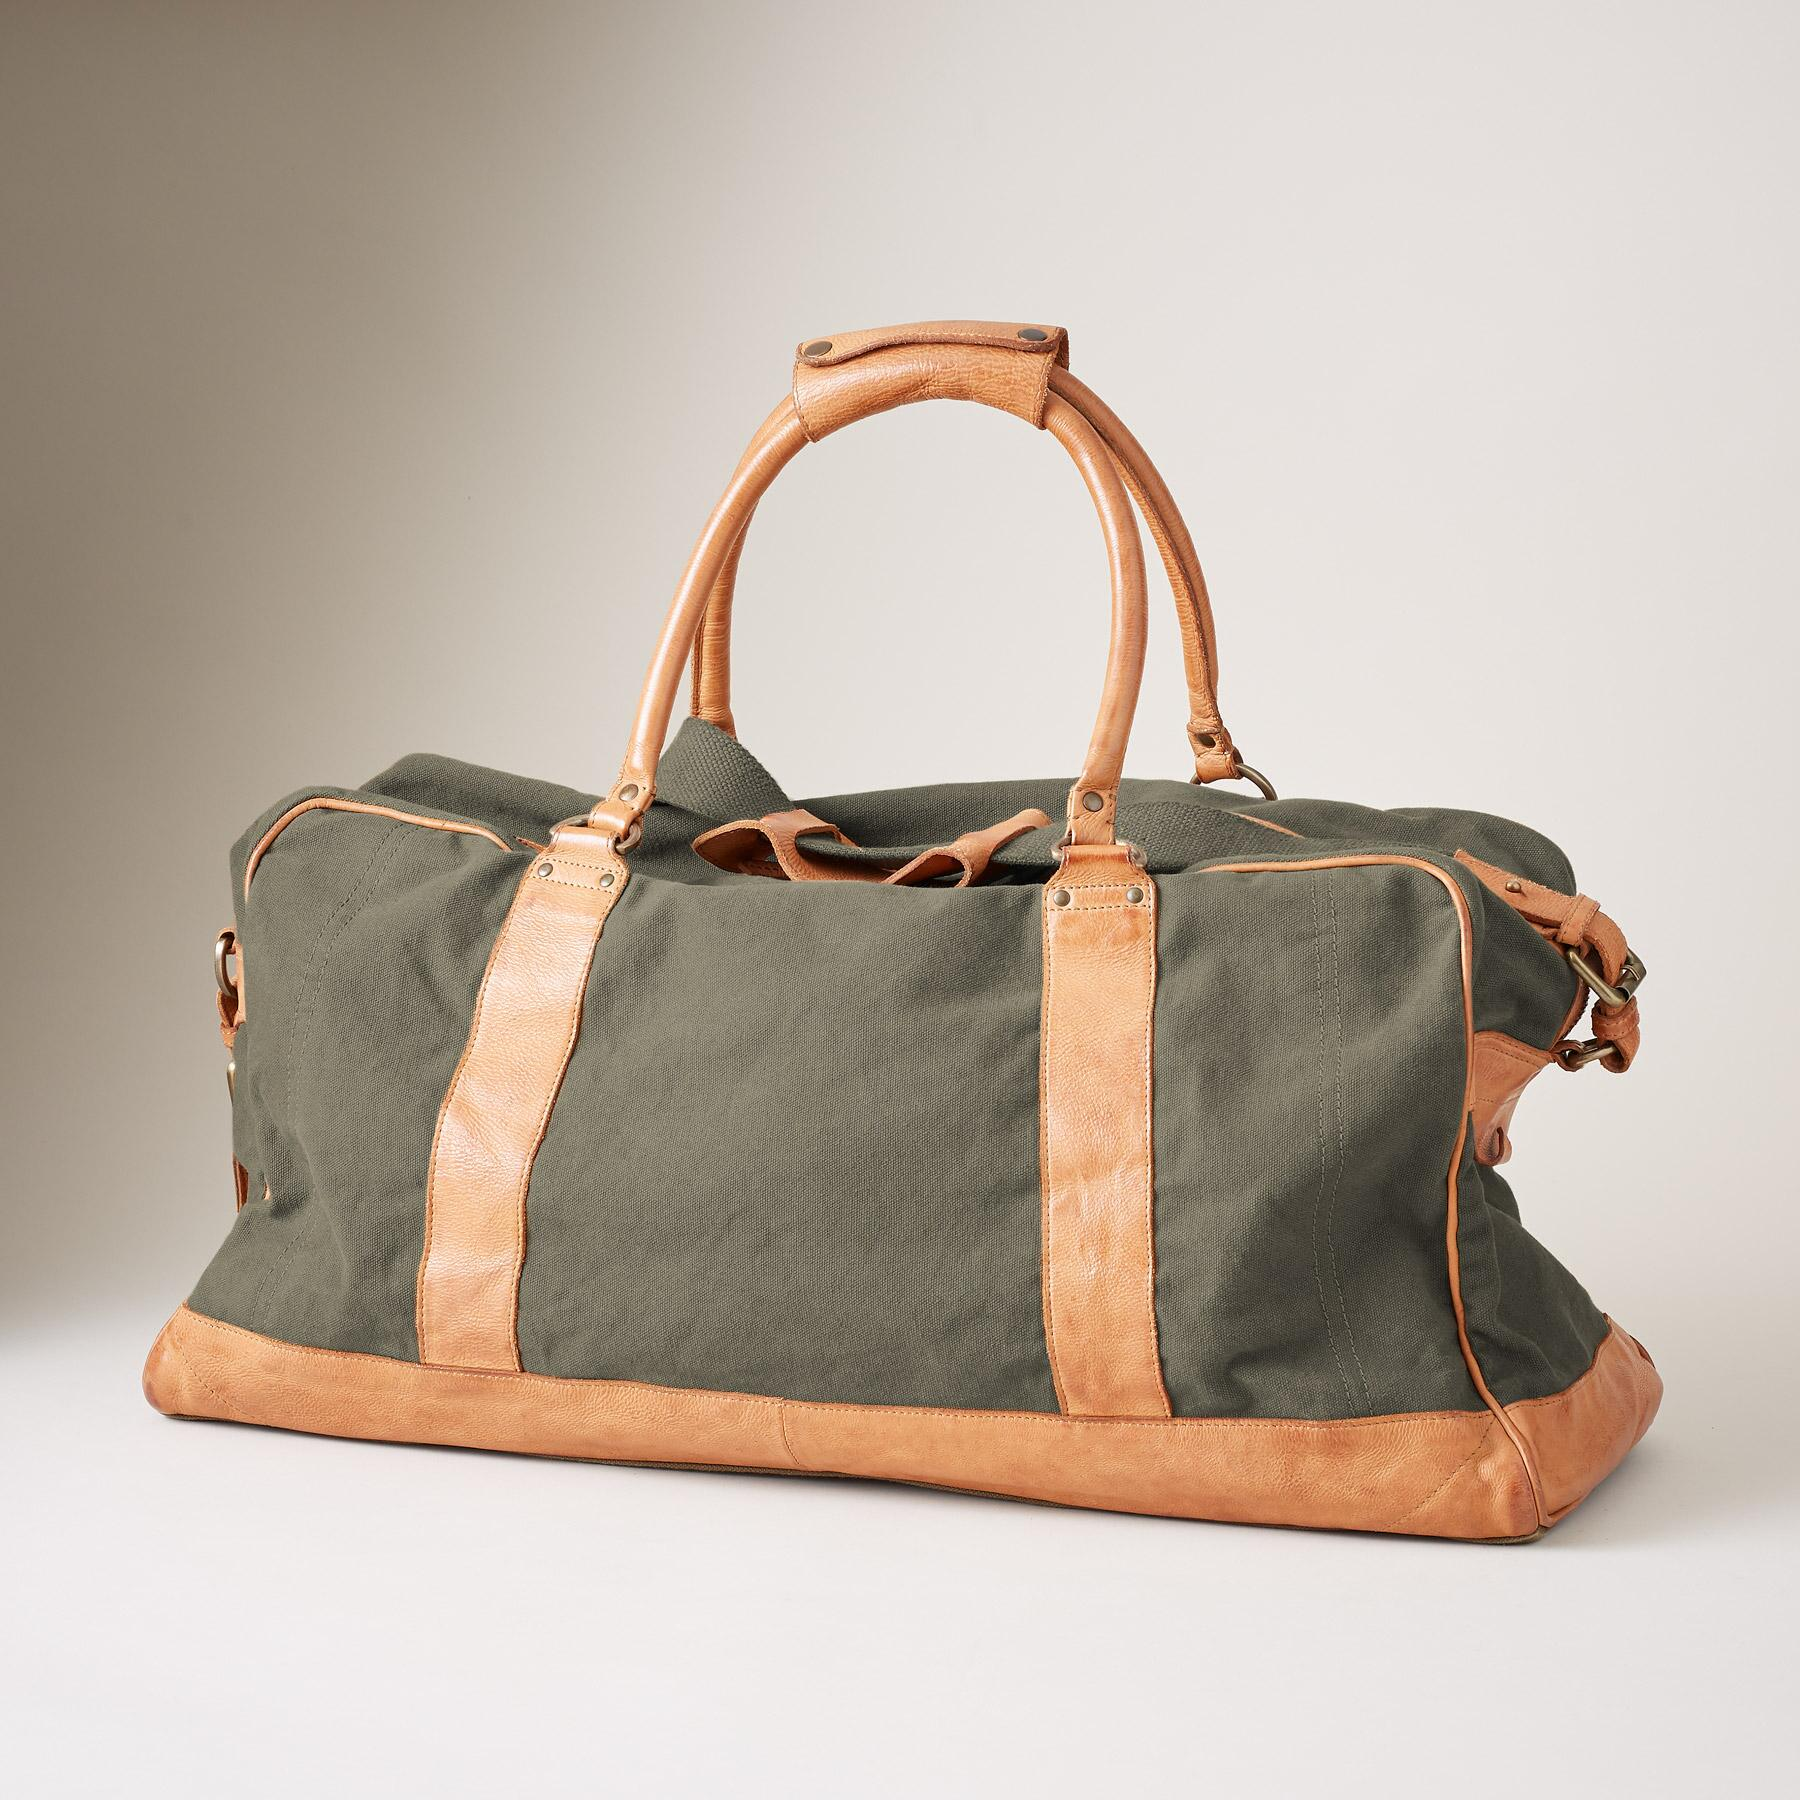 THE TRAVELER'S DUFFEL BAG: View 2